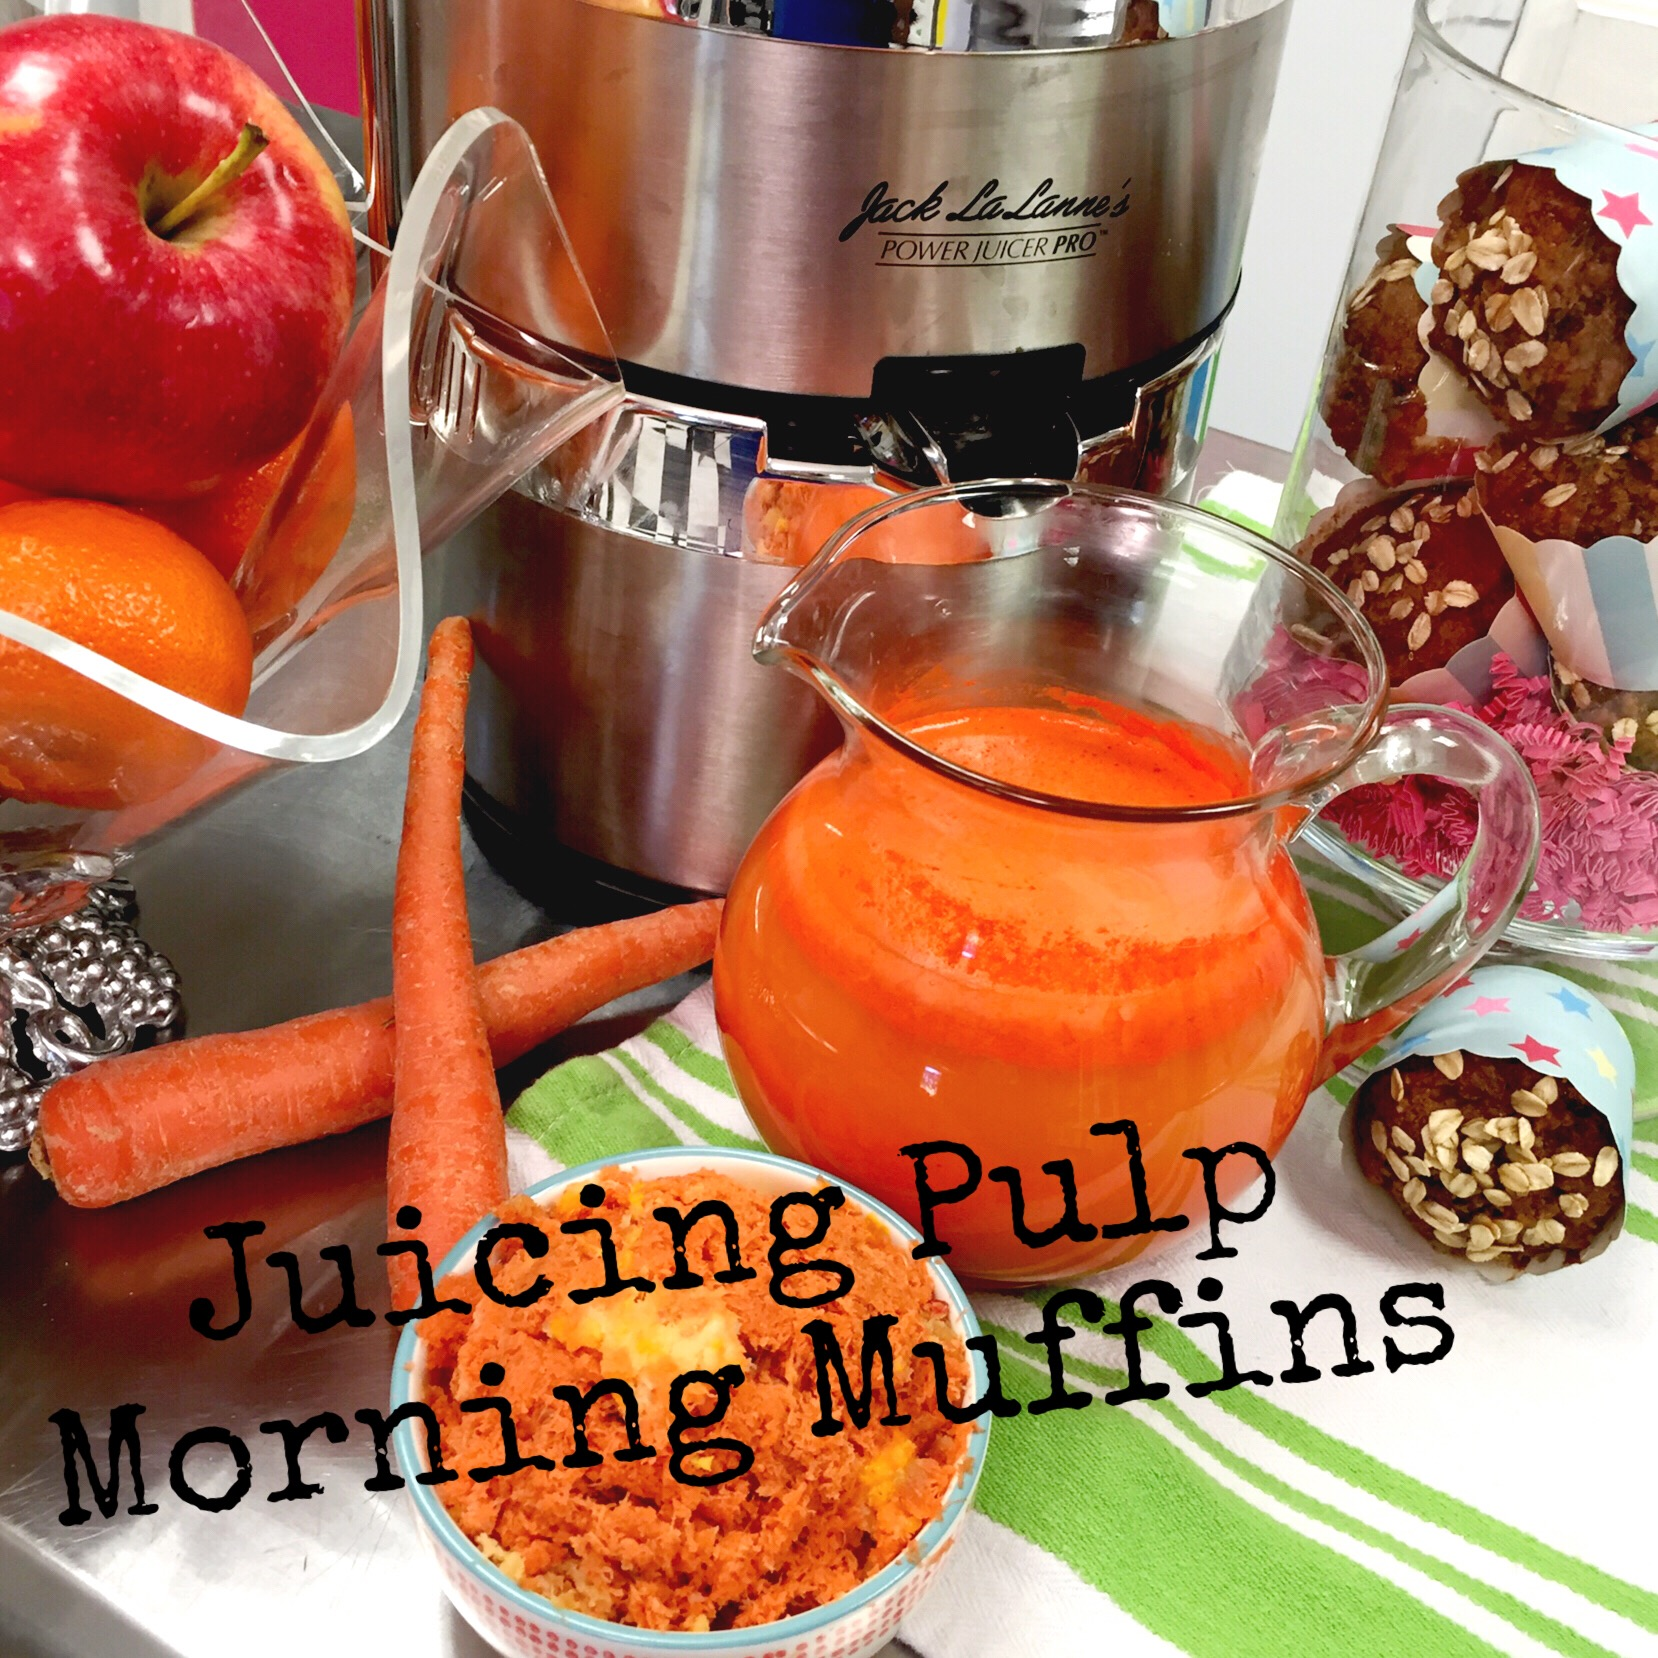 Morning Muffins using discarded pulp from Juicing. Great source of fiber & wonderful way to start your day! www.ChefShayna.com